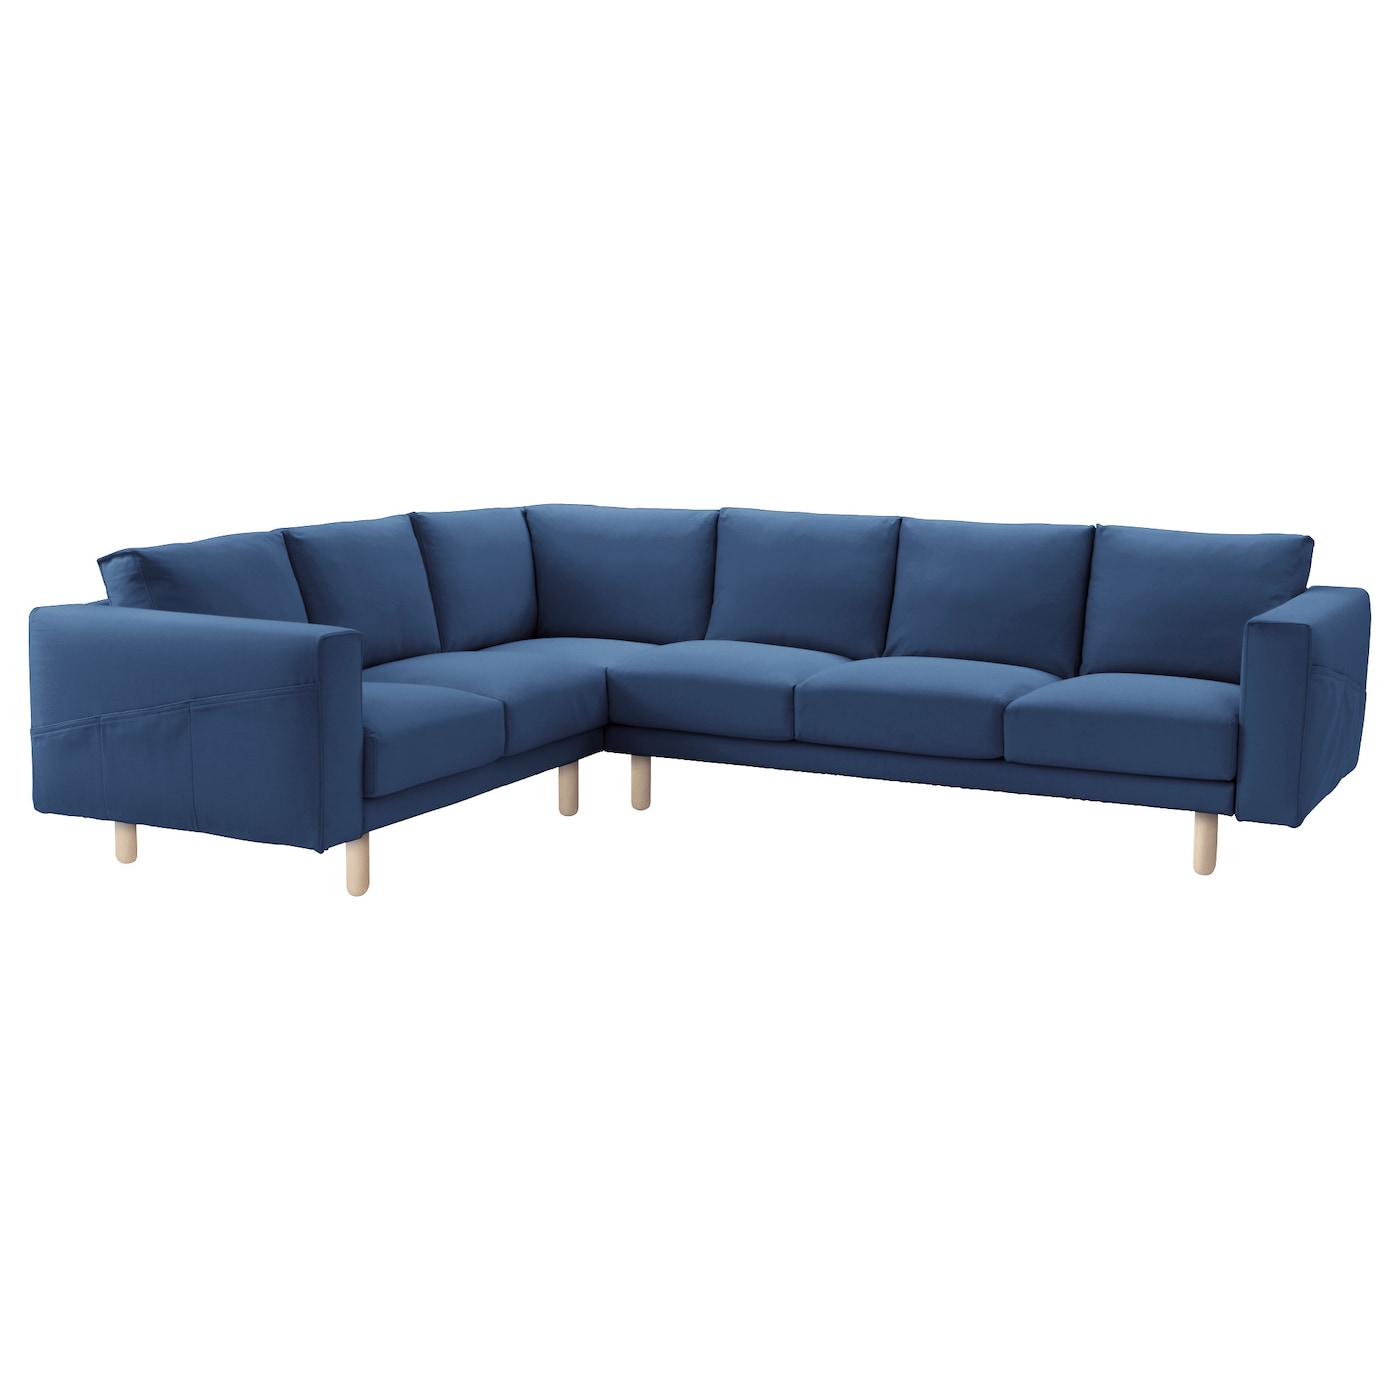 IKEA NORSBORG corner sofa 2+3/3+2 10 year guarantee. Read about the terms in the guarantee brochure.